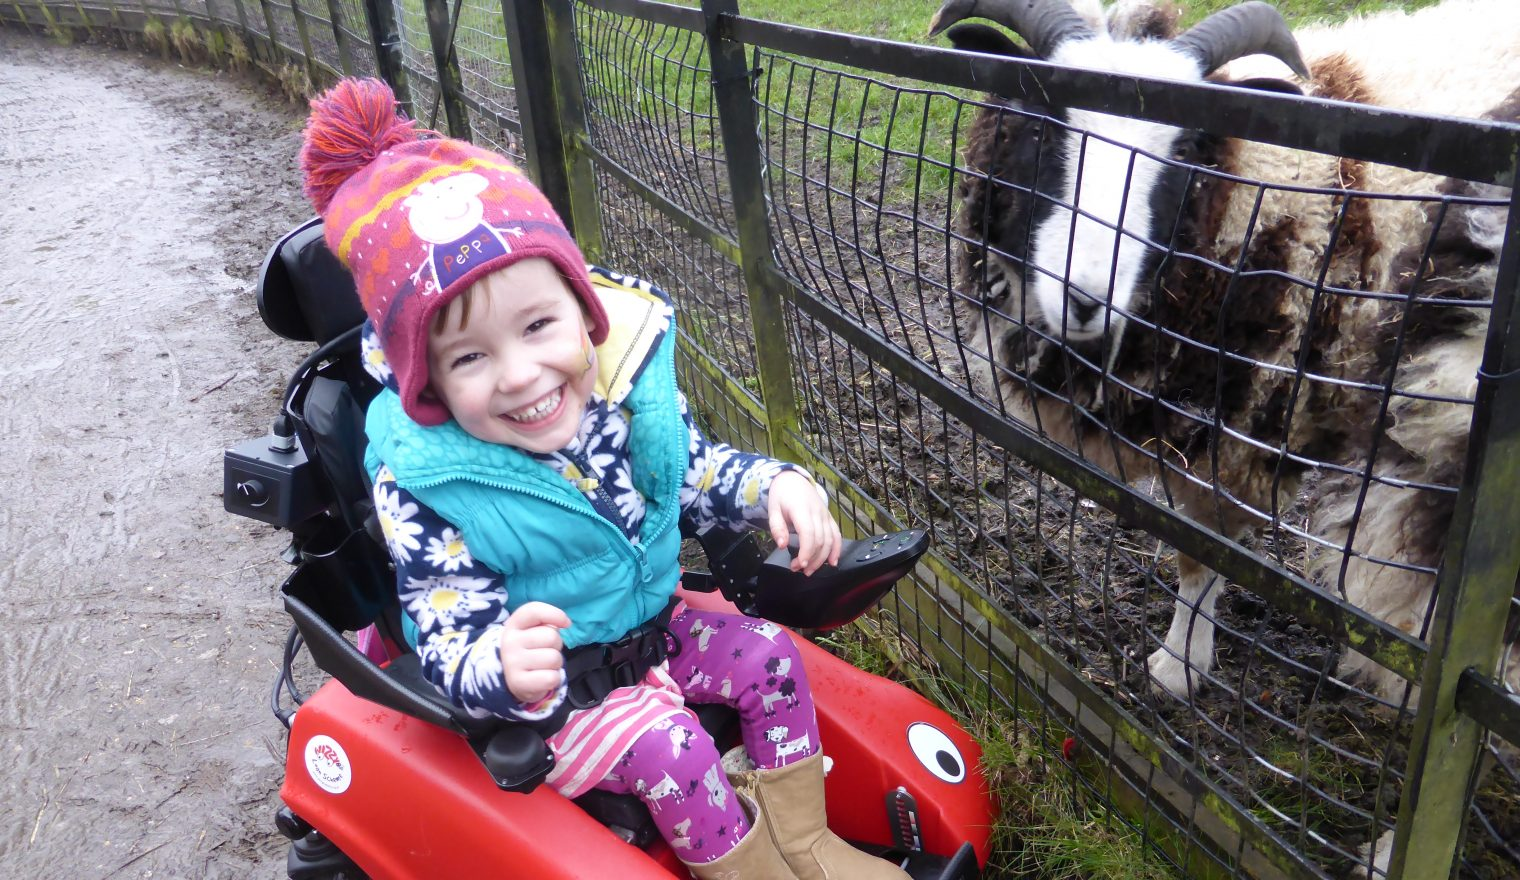 Little girl in her Wizzybug powered wheelchair with a sheep